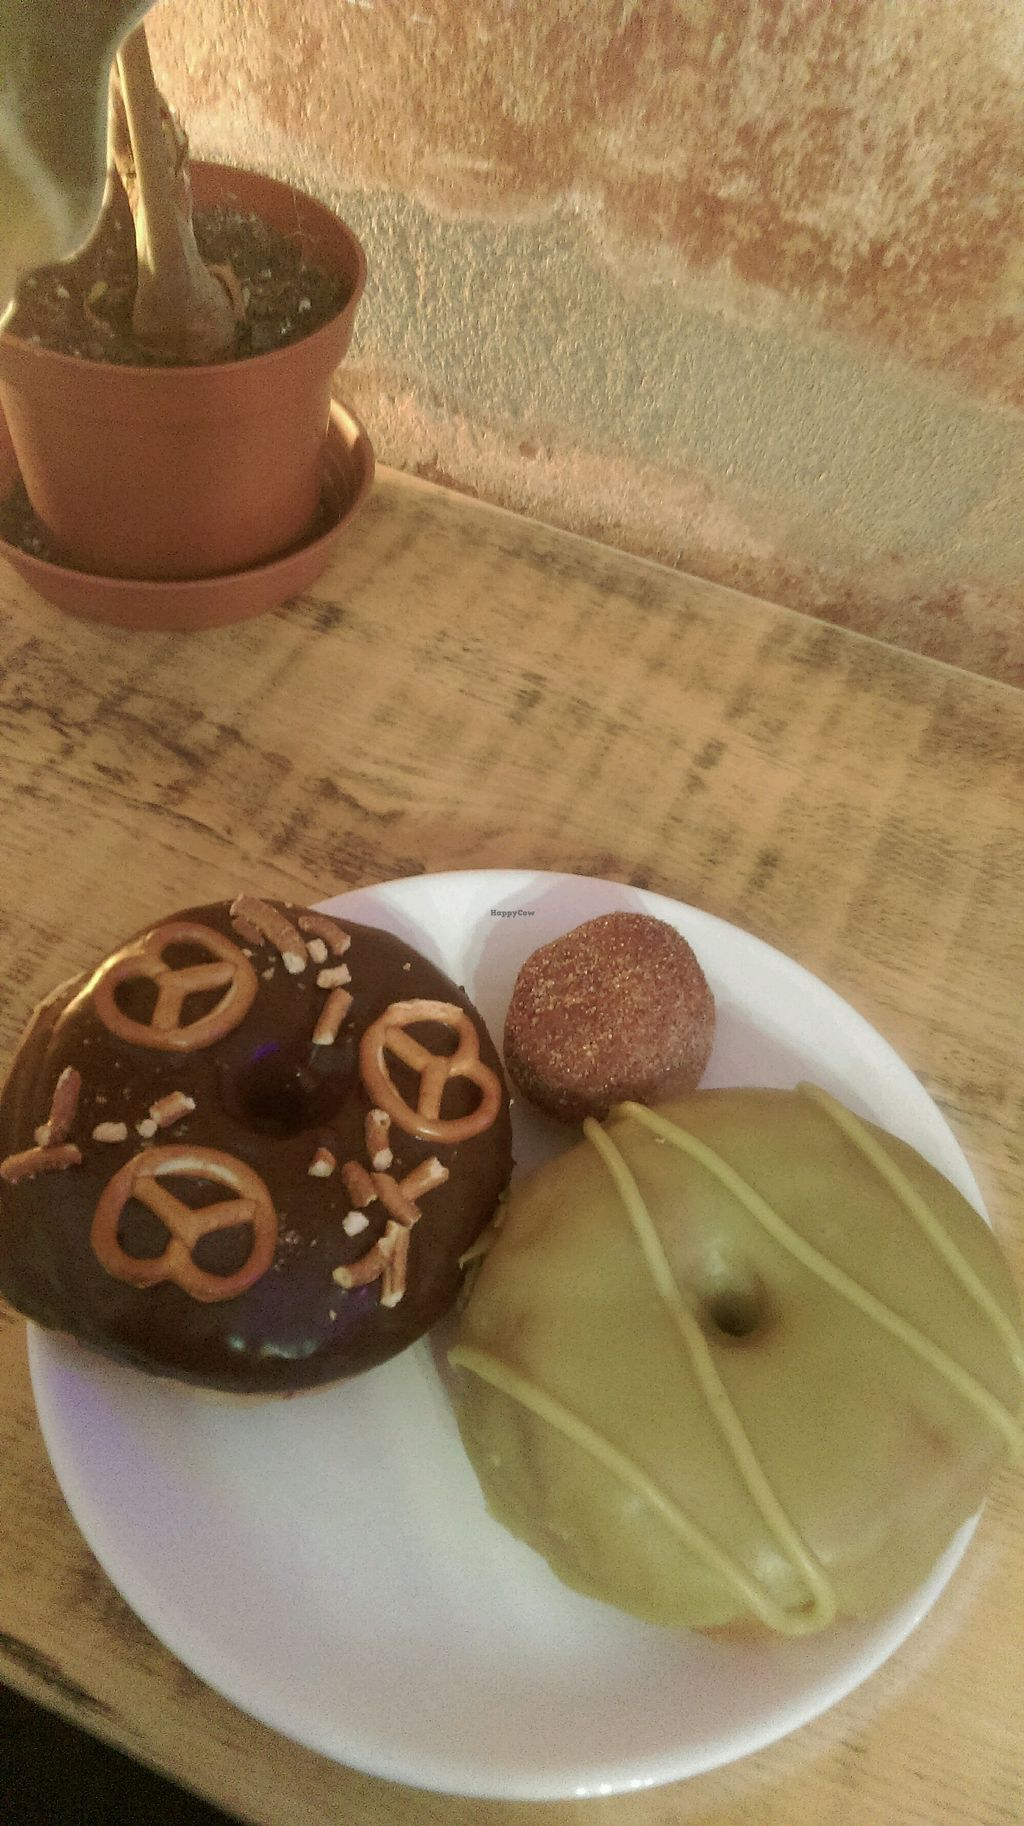 """Photo of Donut Shop  by <a href=""""/members/profile/Sirimande"""">Sirimande</a> <br/>matcha, pretzel with Chocolate and a cinnamon ball  <br/> April 2, 2018  - <a href='/contact/abuse/image/97758/379842'>Report</a>"""